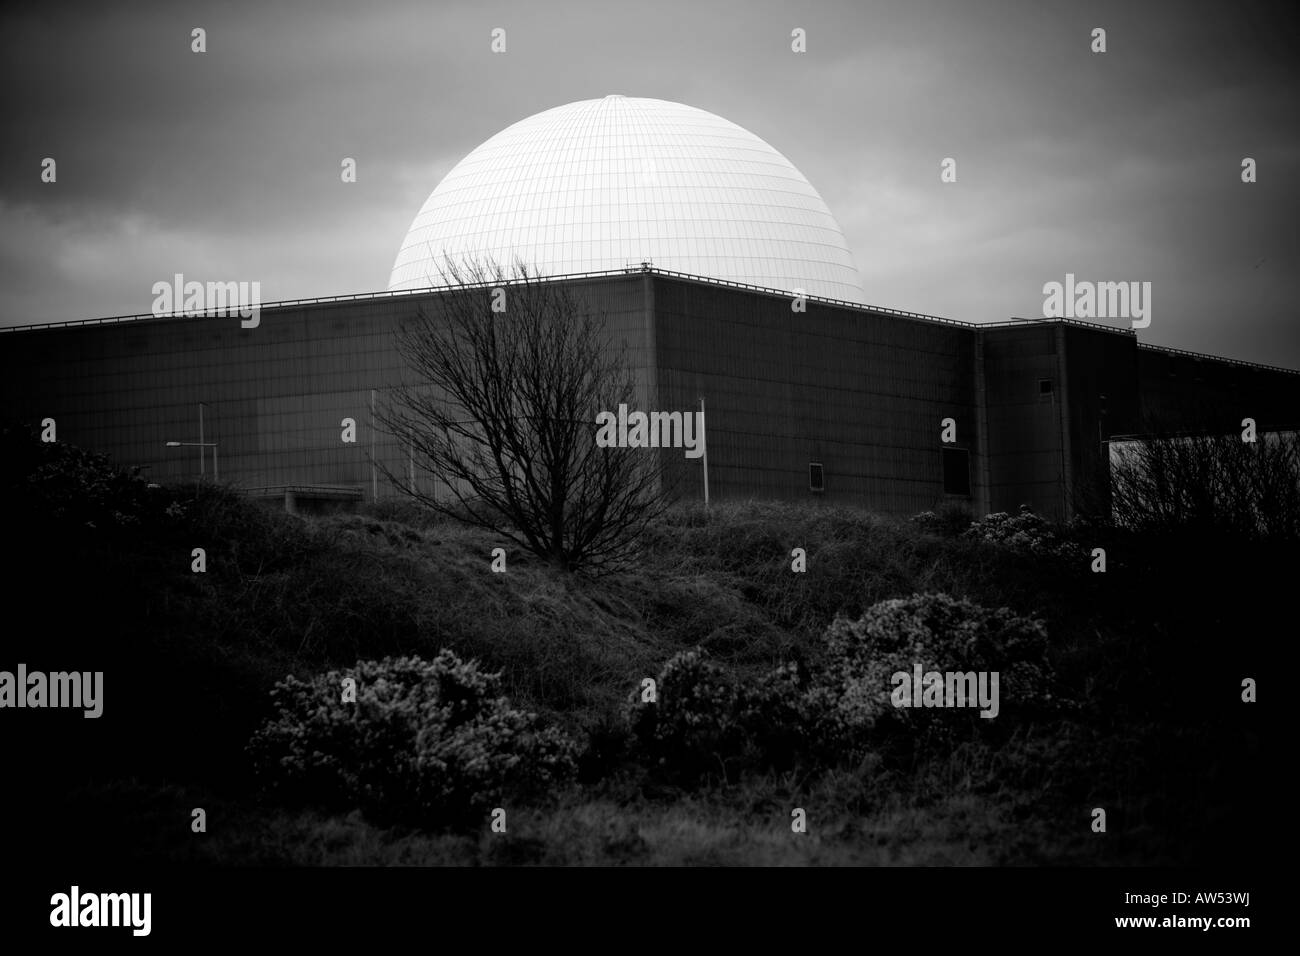 Sizewell B with dome Nuclear Power Stations on the Suffolk coast of Britain - Stock Image